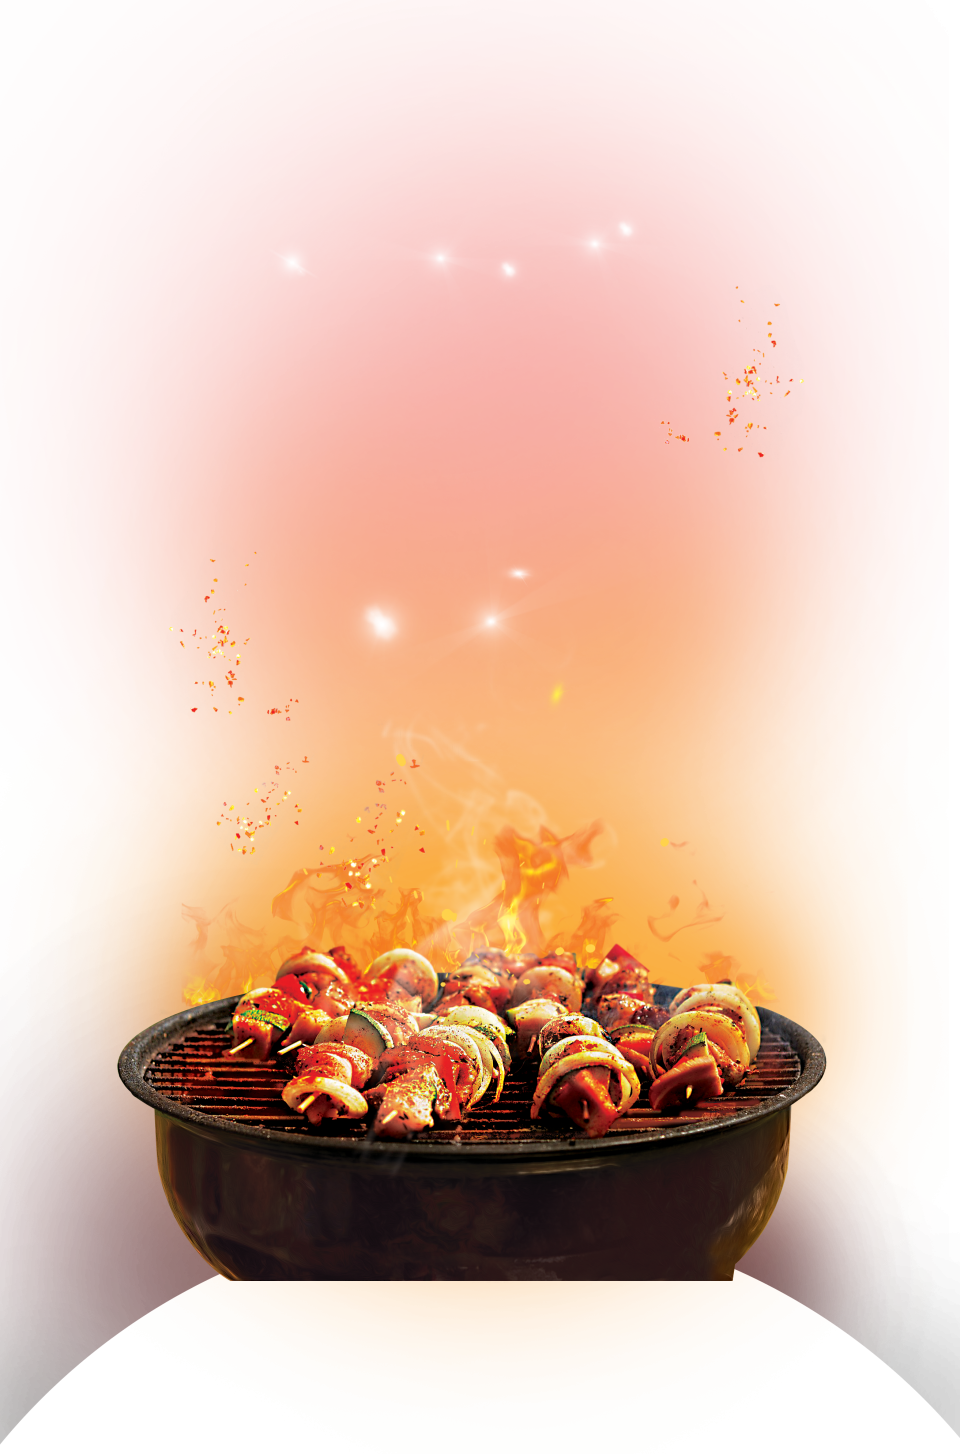 Barbecue cook on Grill PNG Image